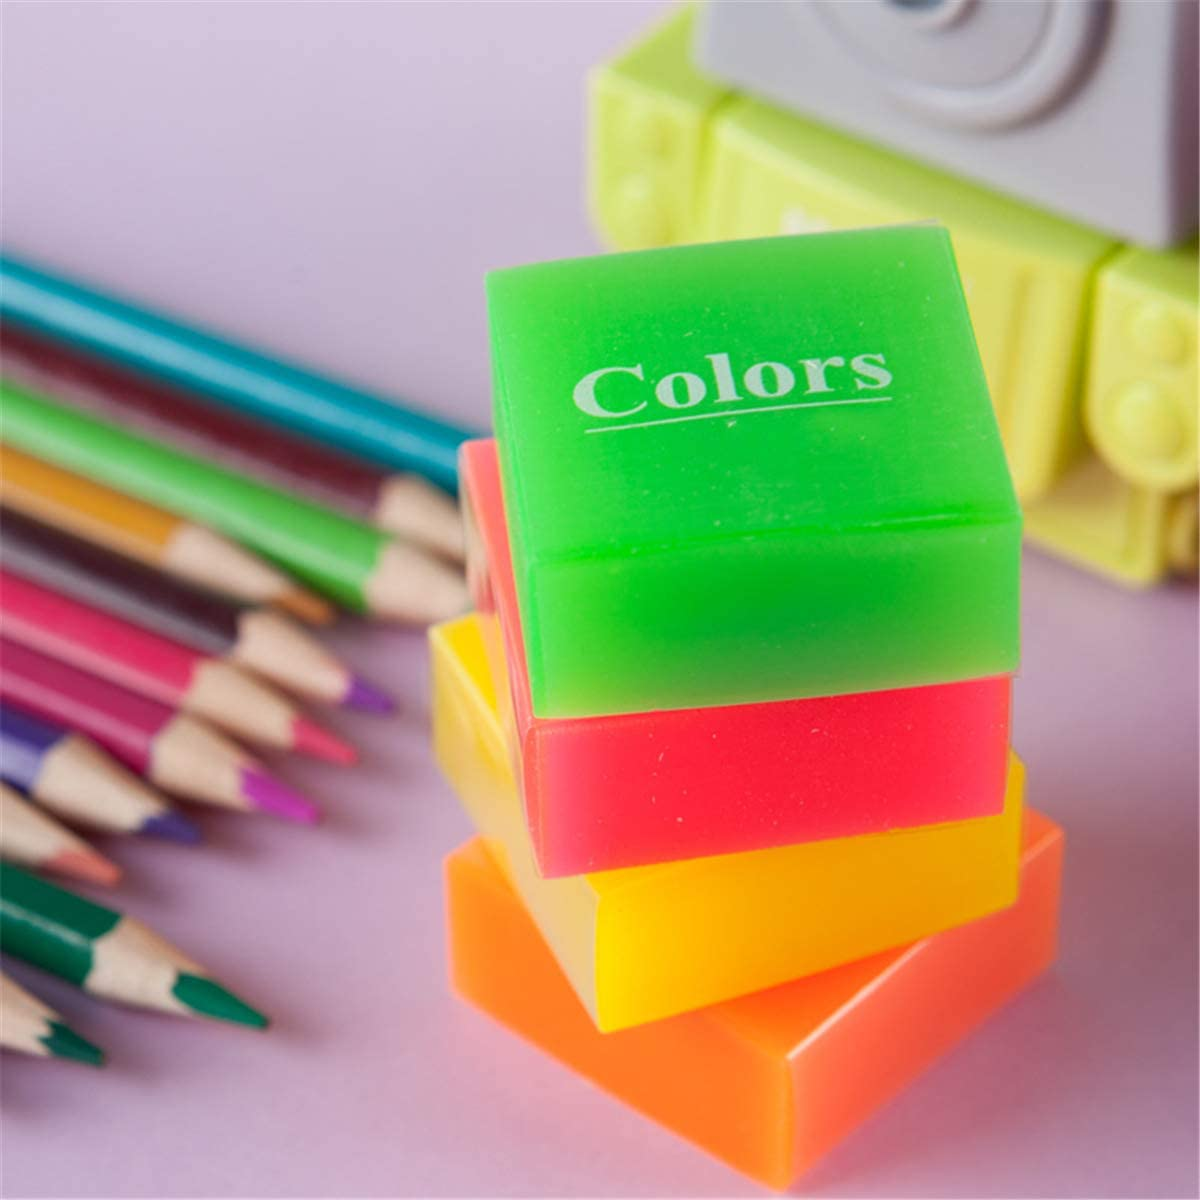 Vxkbiixxcs-o Eraser, 4 Pieces Pure Color Jelly Color Eraser Kids Student Gift Learning Stationery